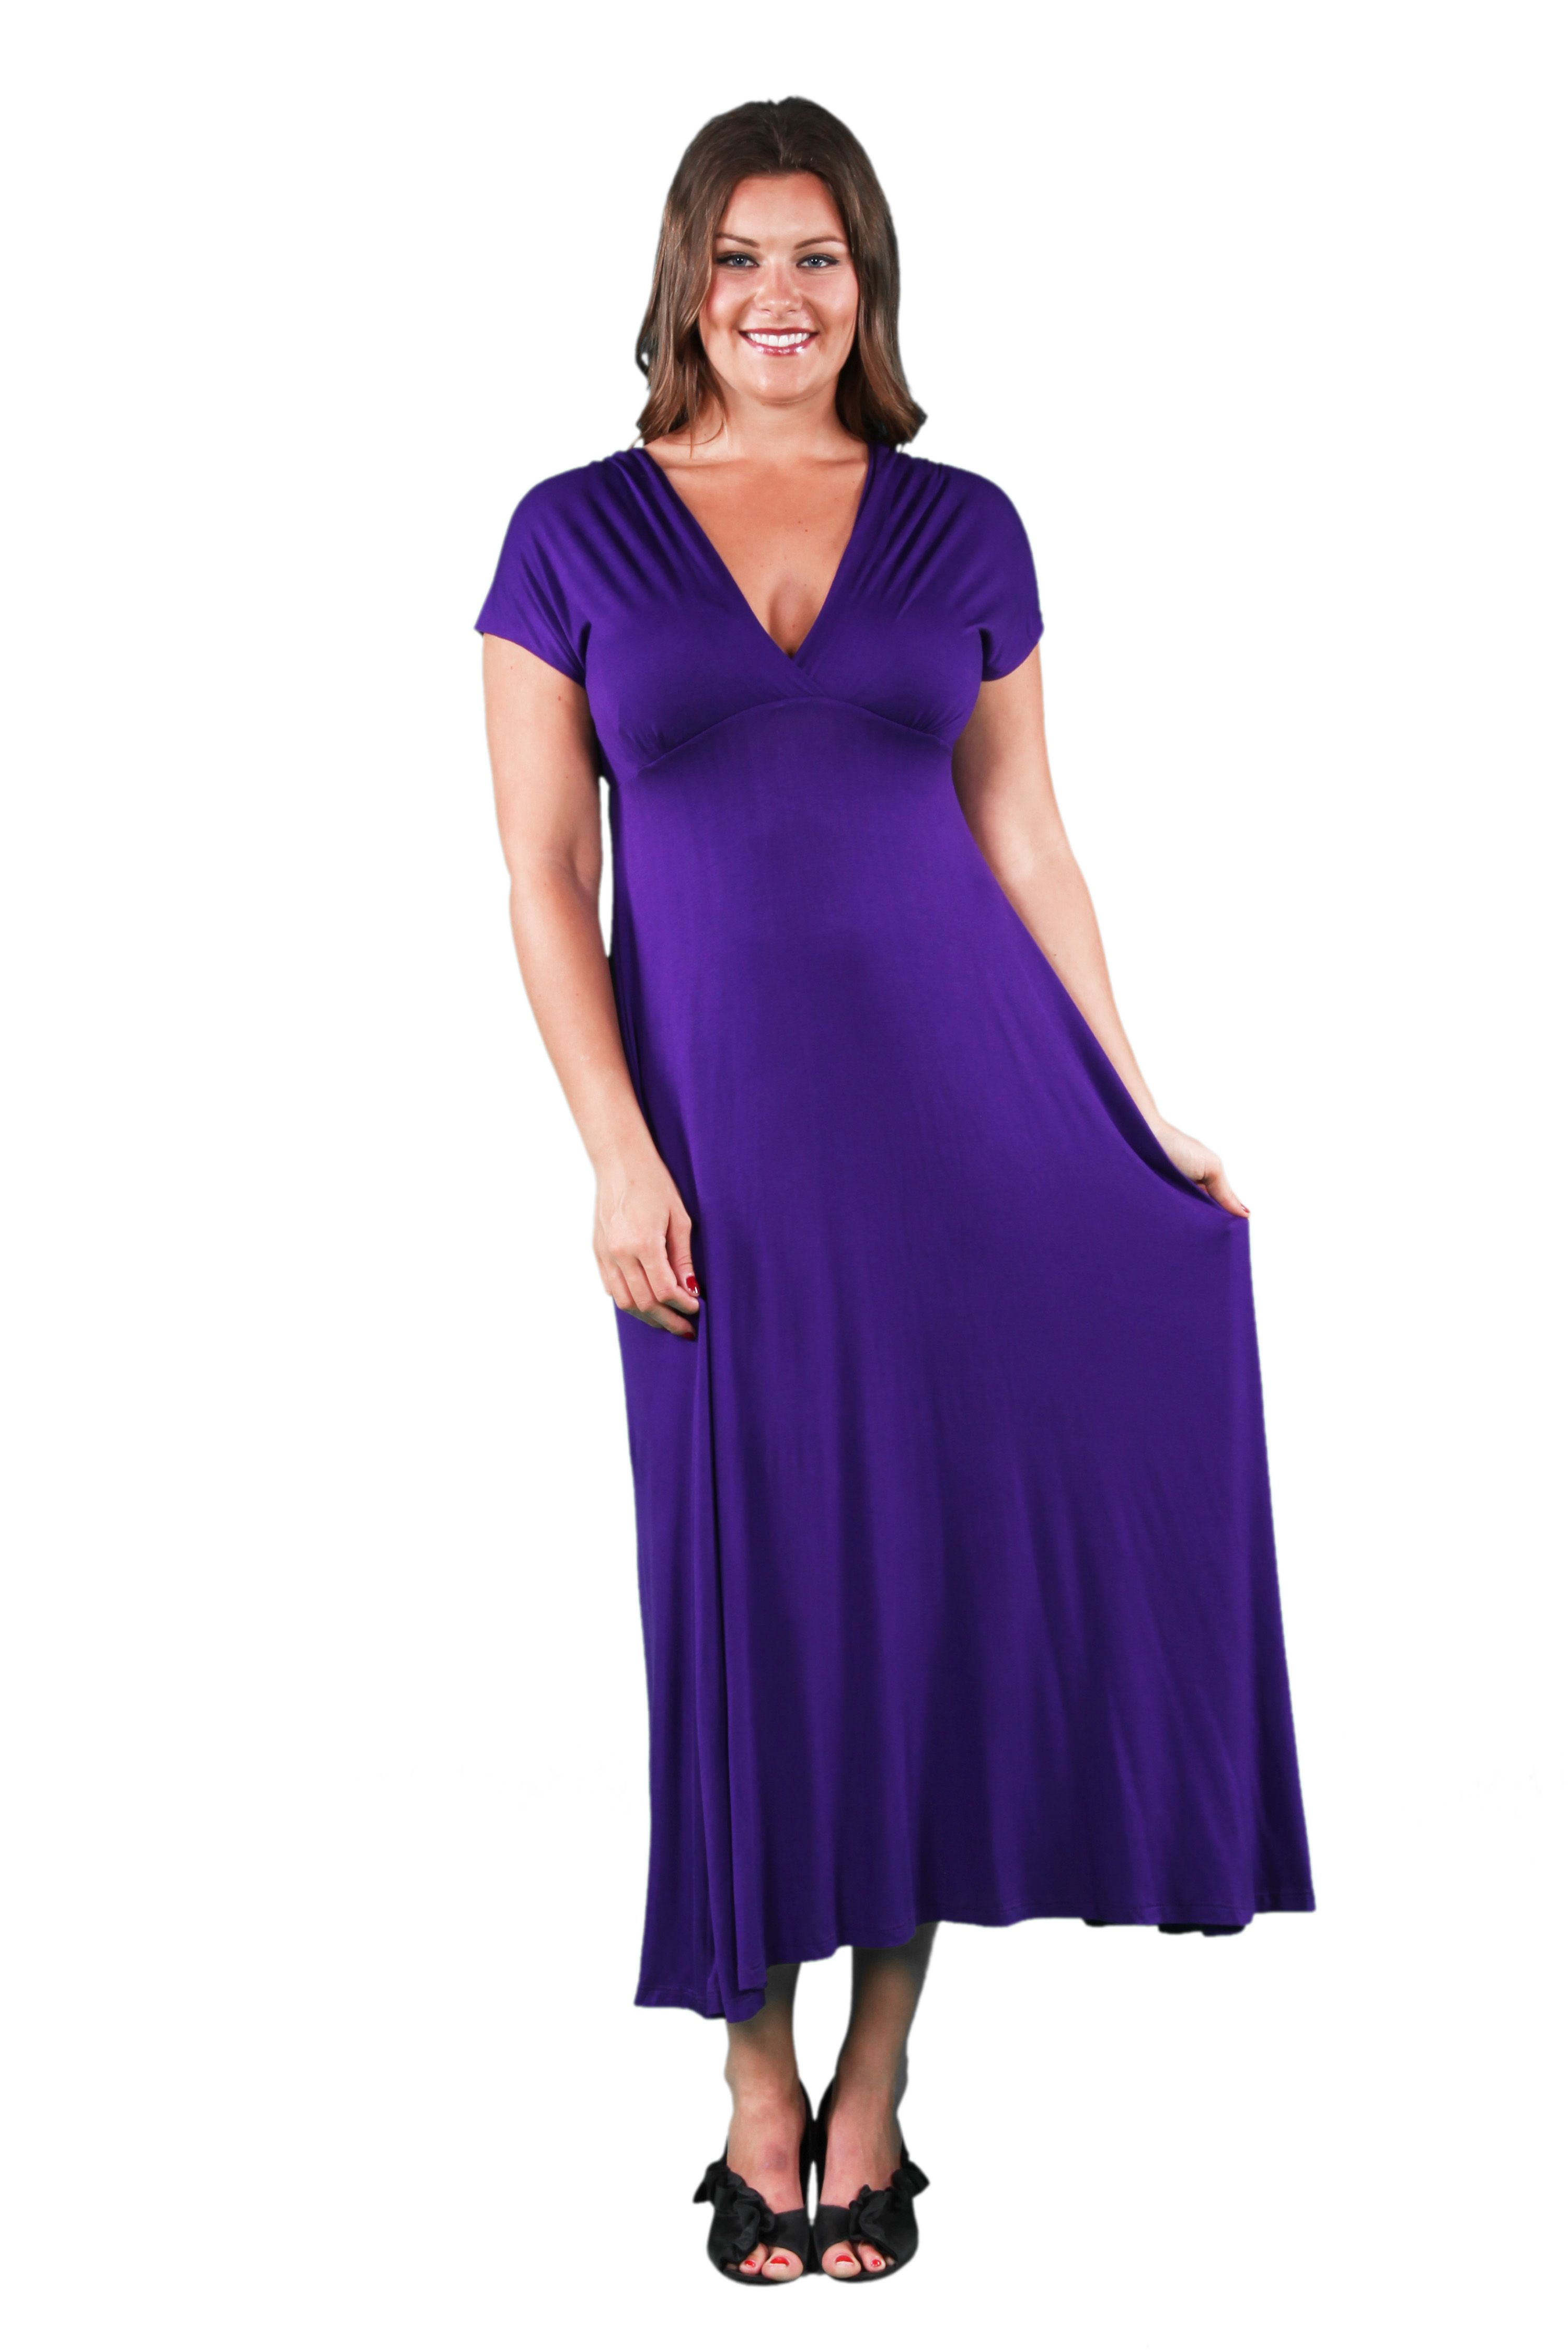 Sears Dresses Plus Sizes : Where To Get